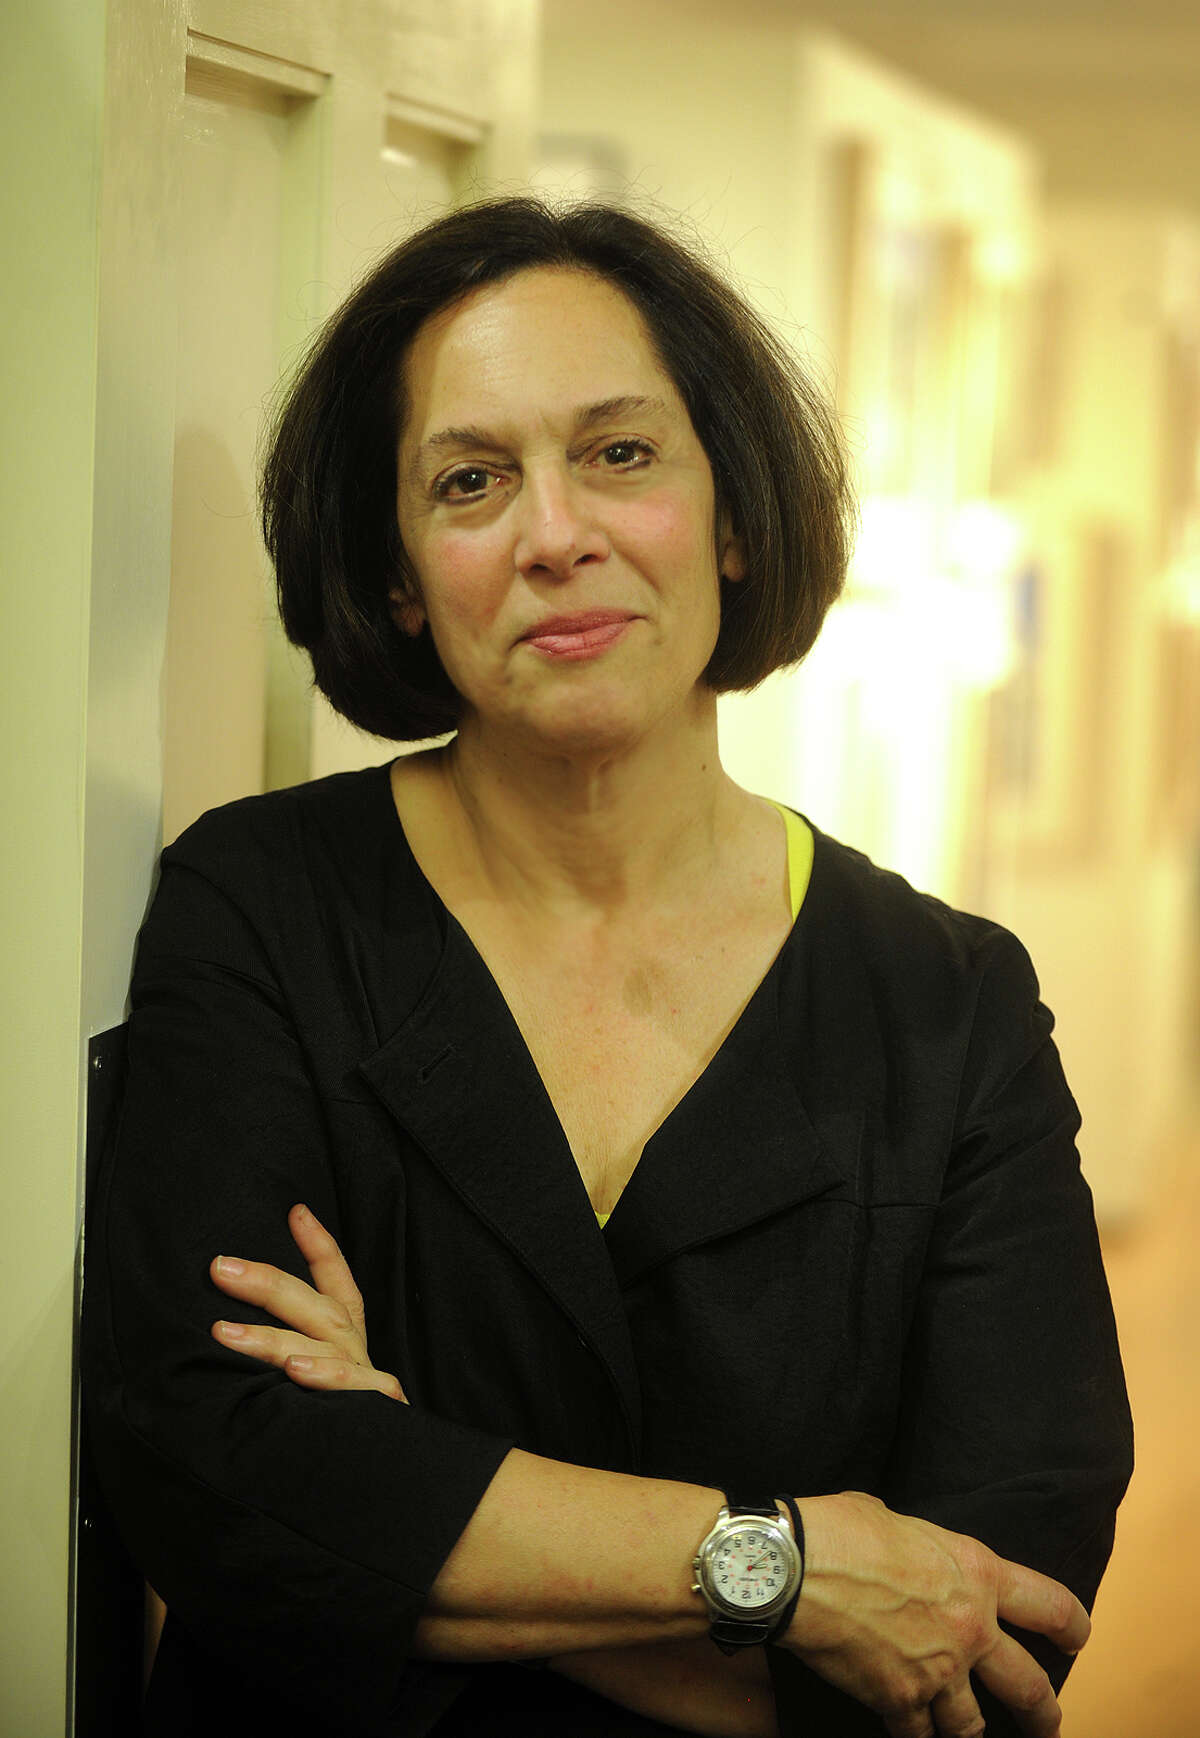 Joette Katz, commissioner for the Department of Children and Families